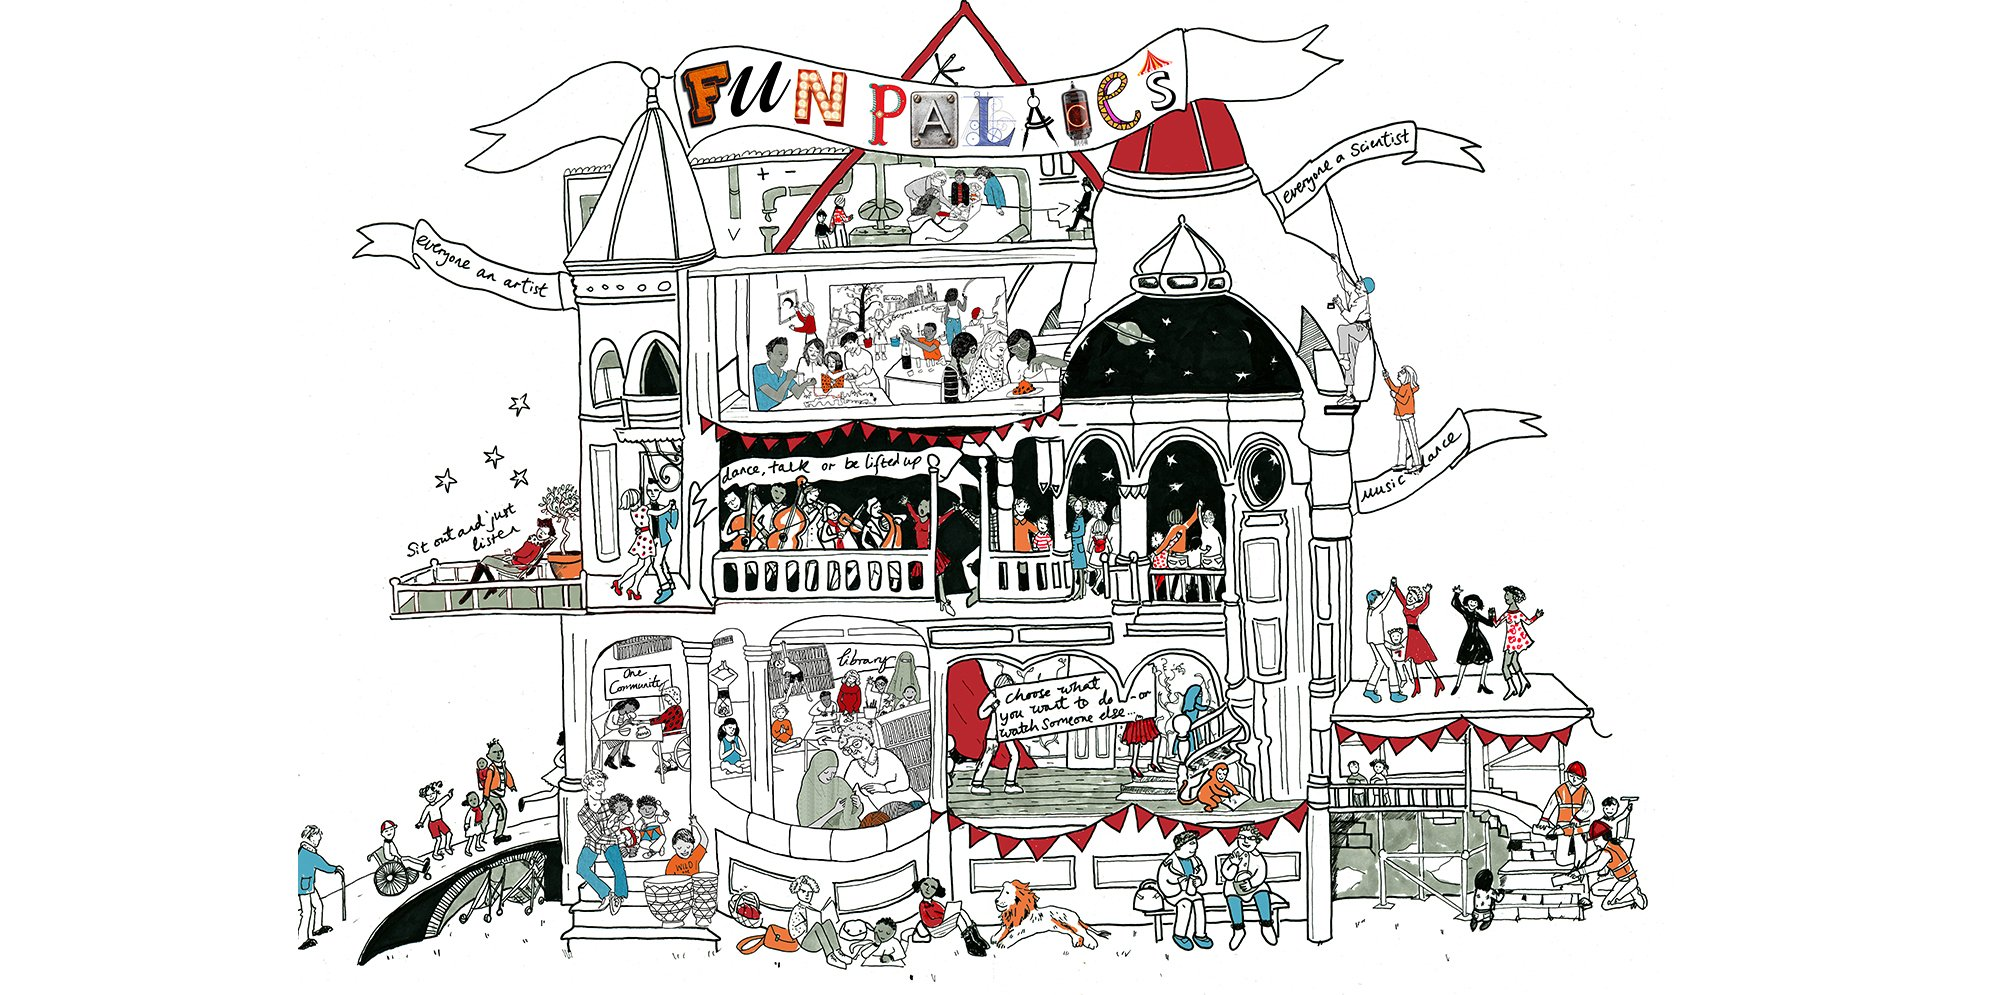 An illustration of a palace like house, we can see into rooms where all sorts of activities going on, from crafts, science, singing and more